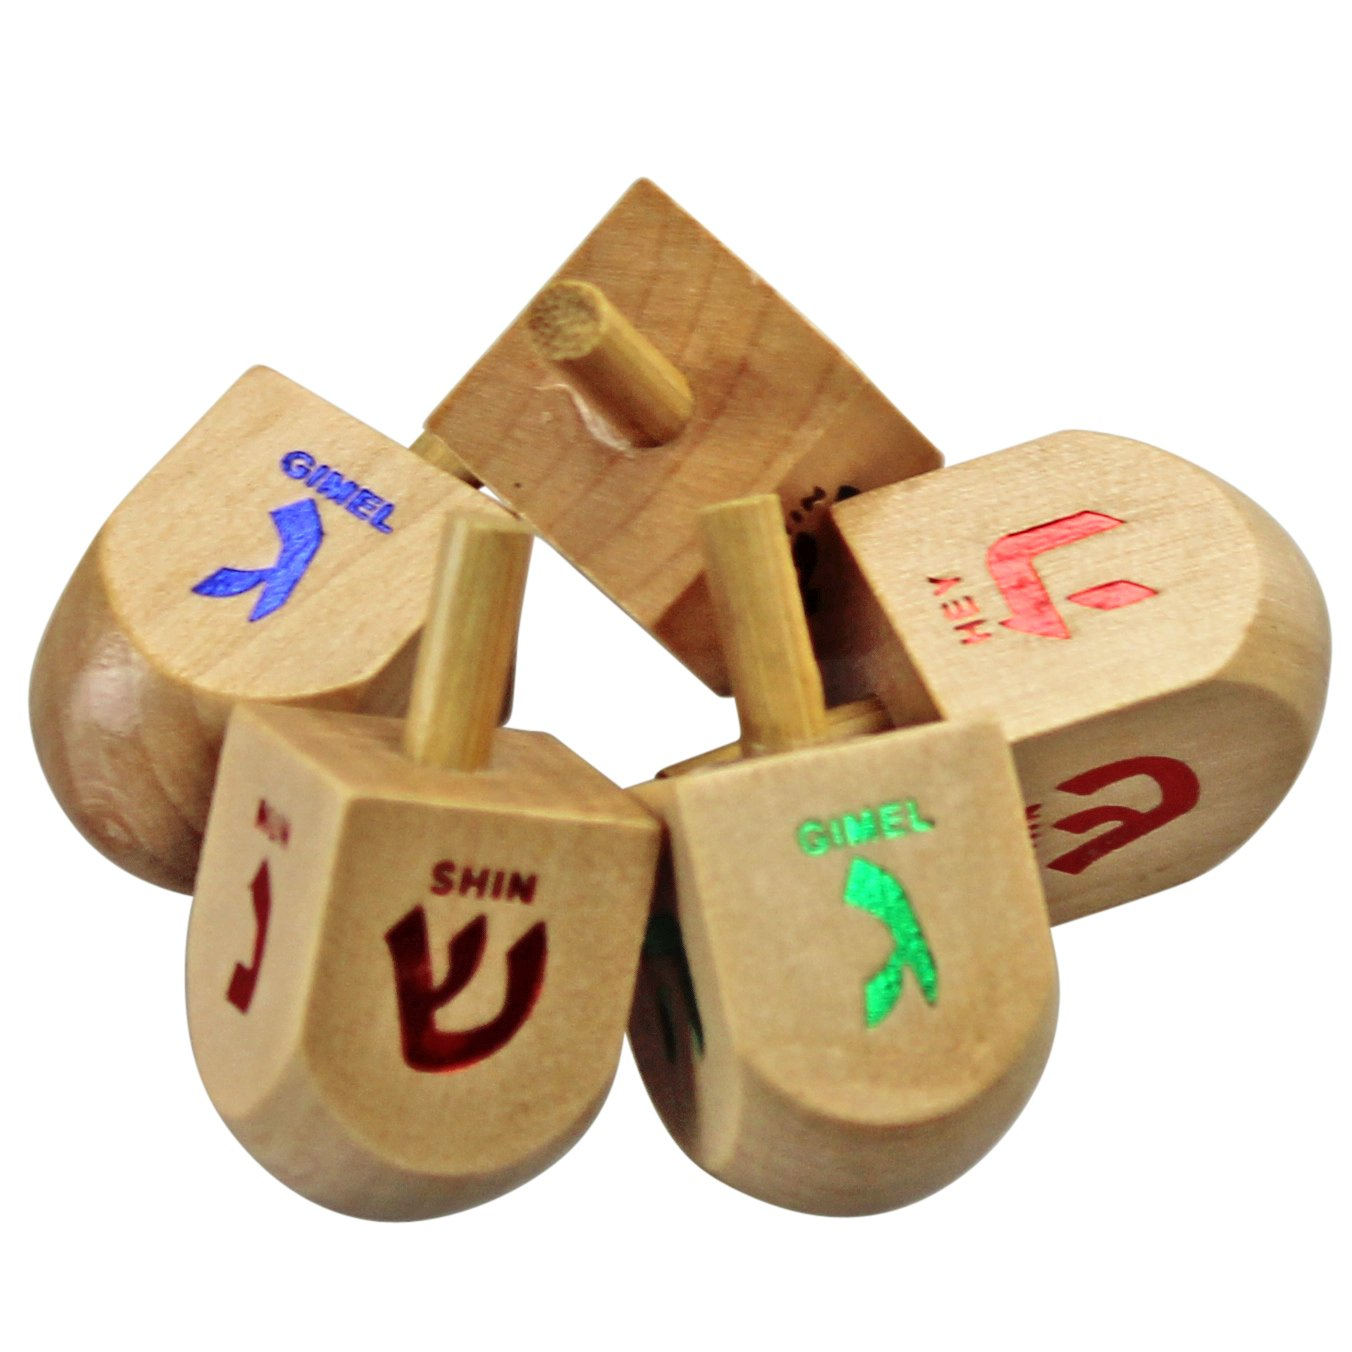 Classic 50 Medium Sized Wooden Dreidels in assorted colors (Instructions Included) by Judaica Mega Mall